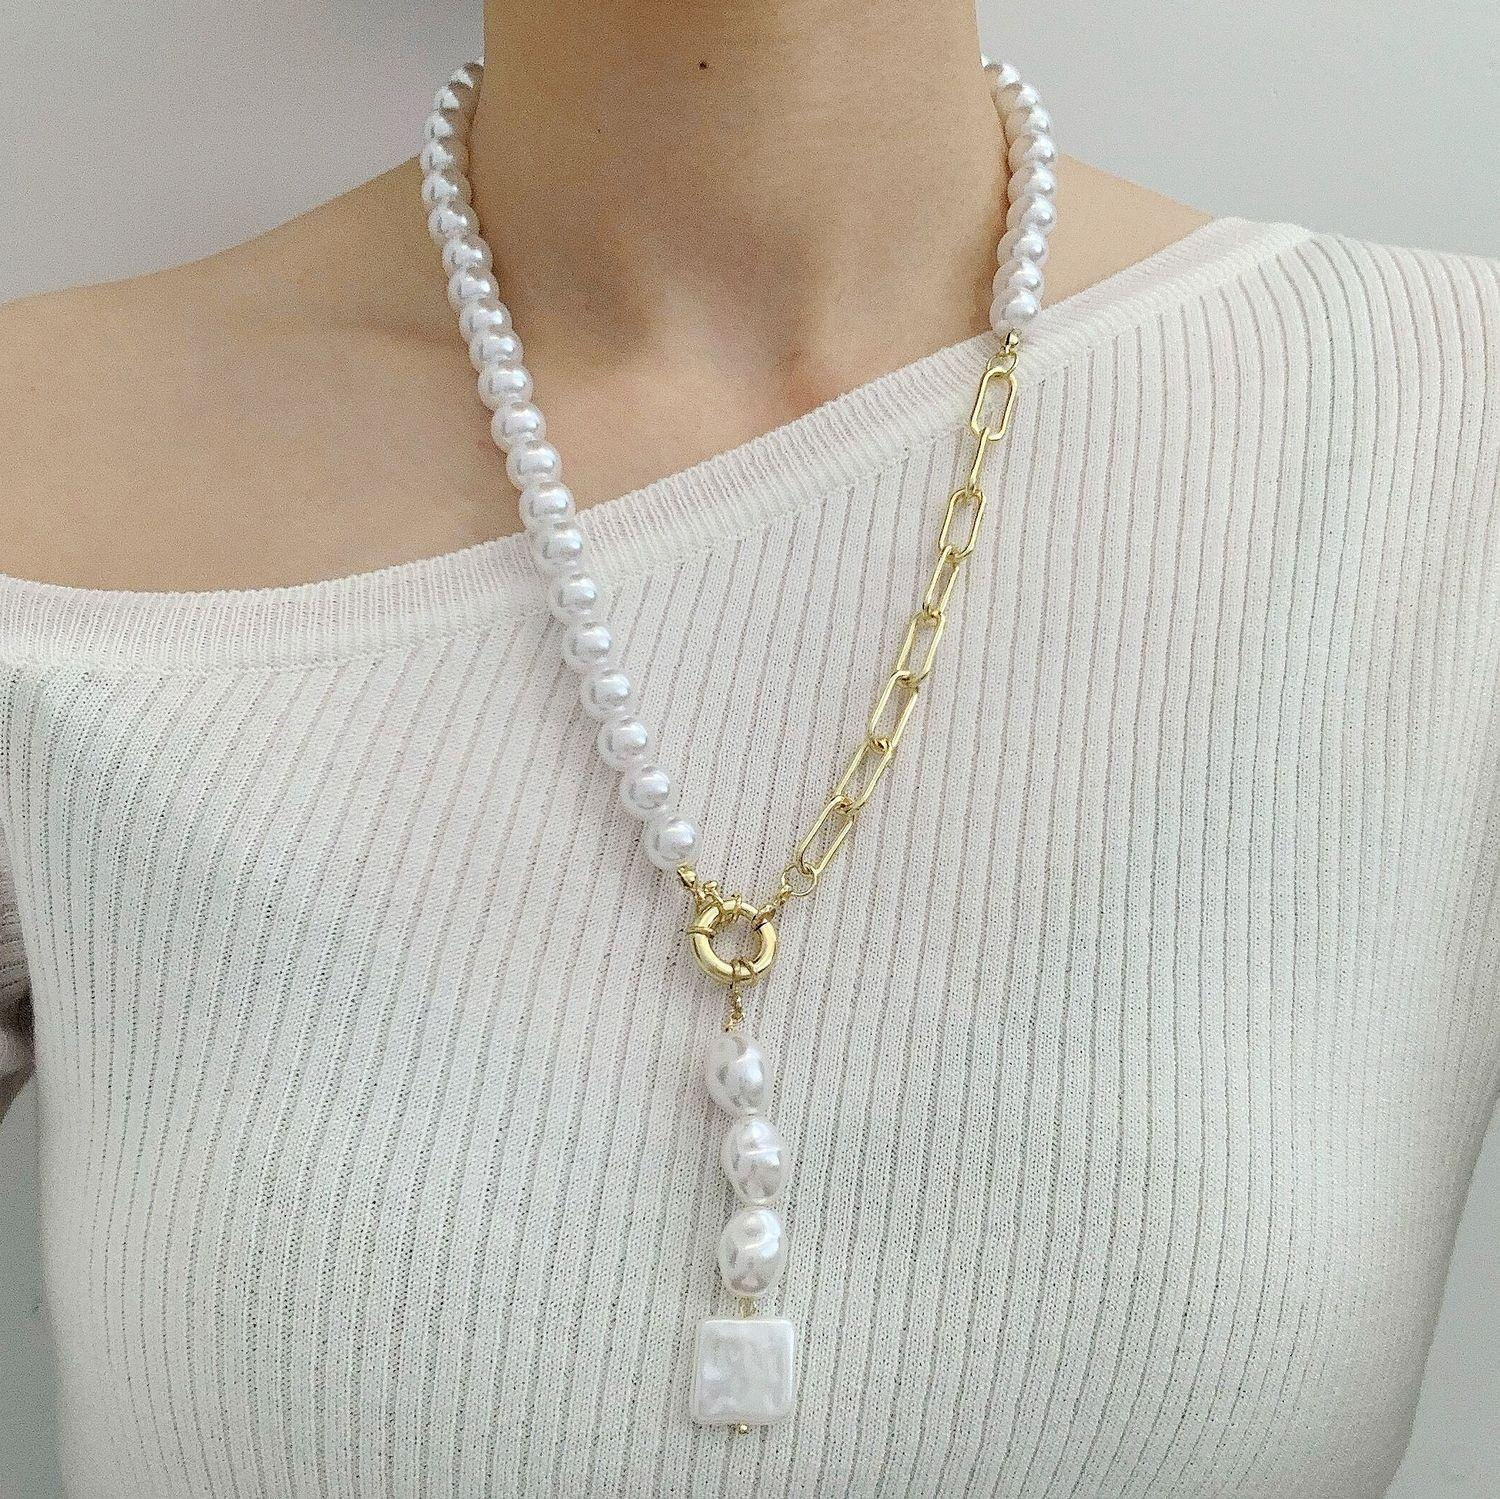 Bead strands necklace O chain strings necklaces long style neck wearing imitation pearl beads update trends female costume accessories